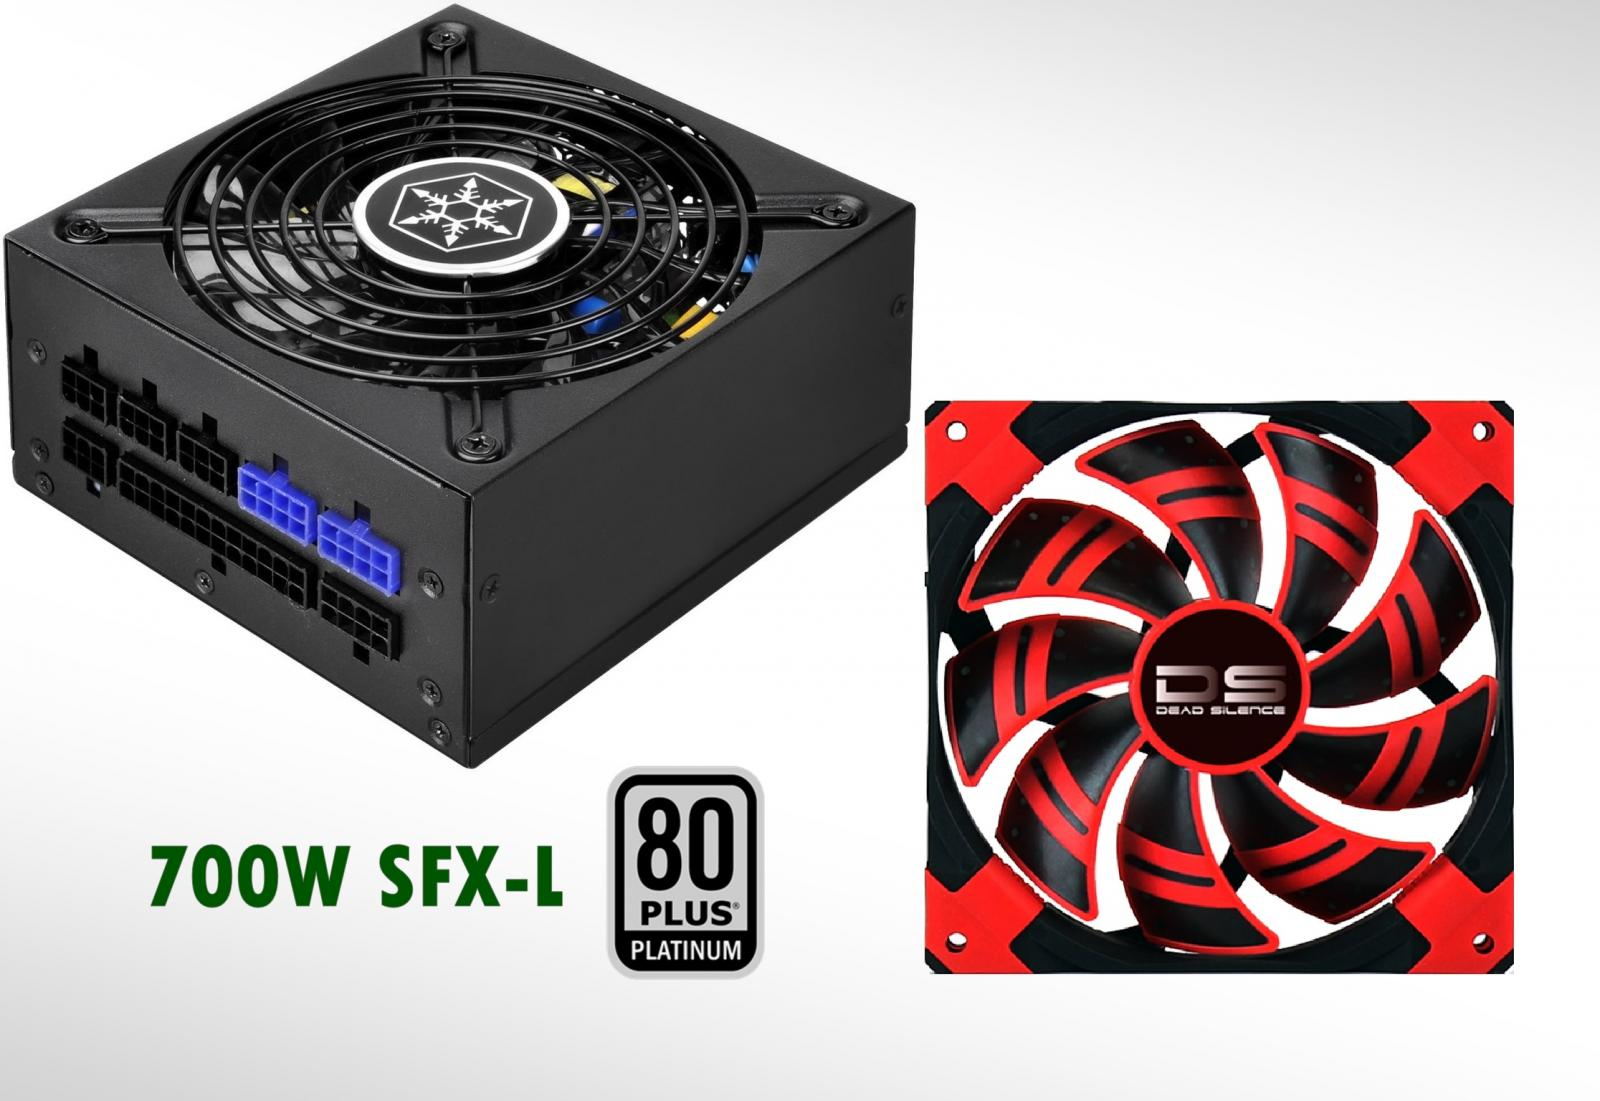 Photo of Silverstone Platinum 700w SFX-L Power Supply +140mm Pressure Red LED Fan